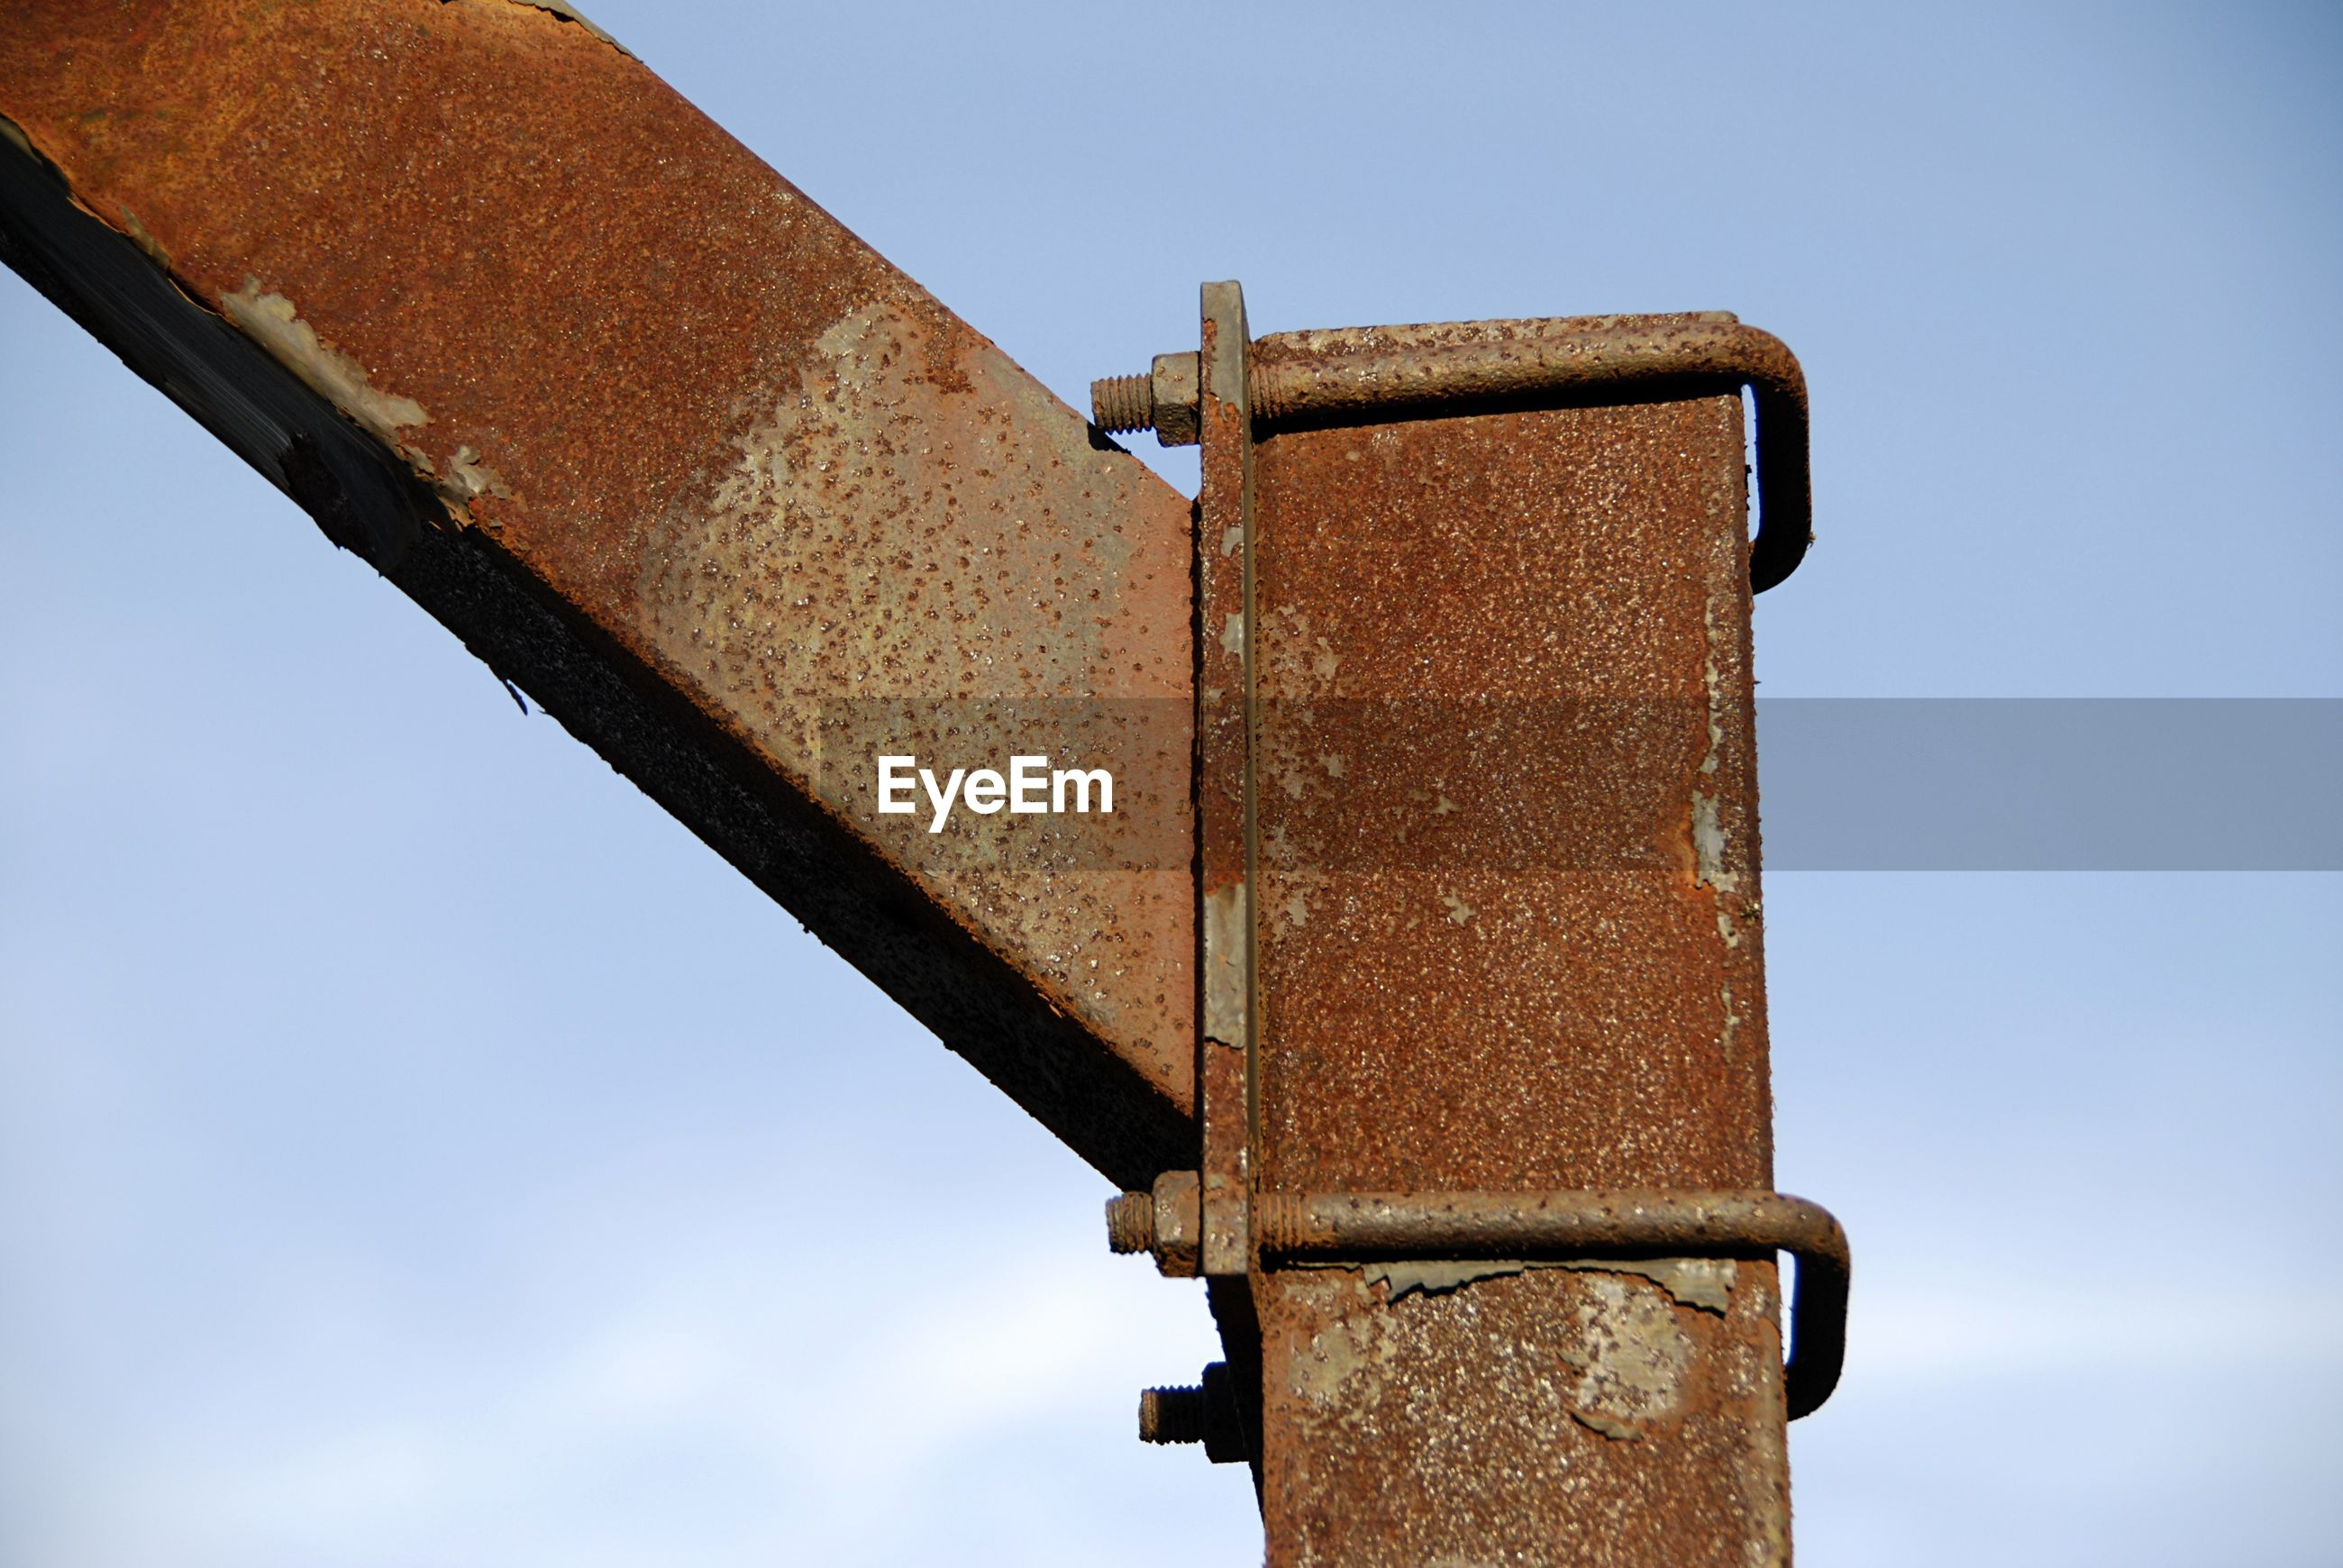 Low angle view of rusty metal against sky